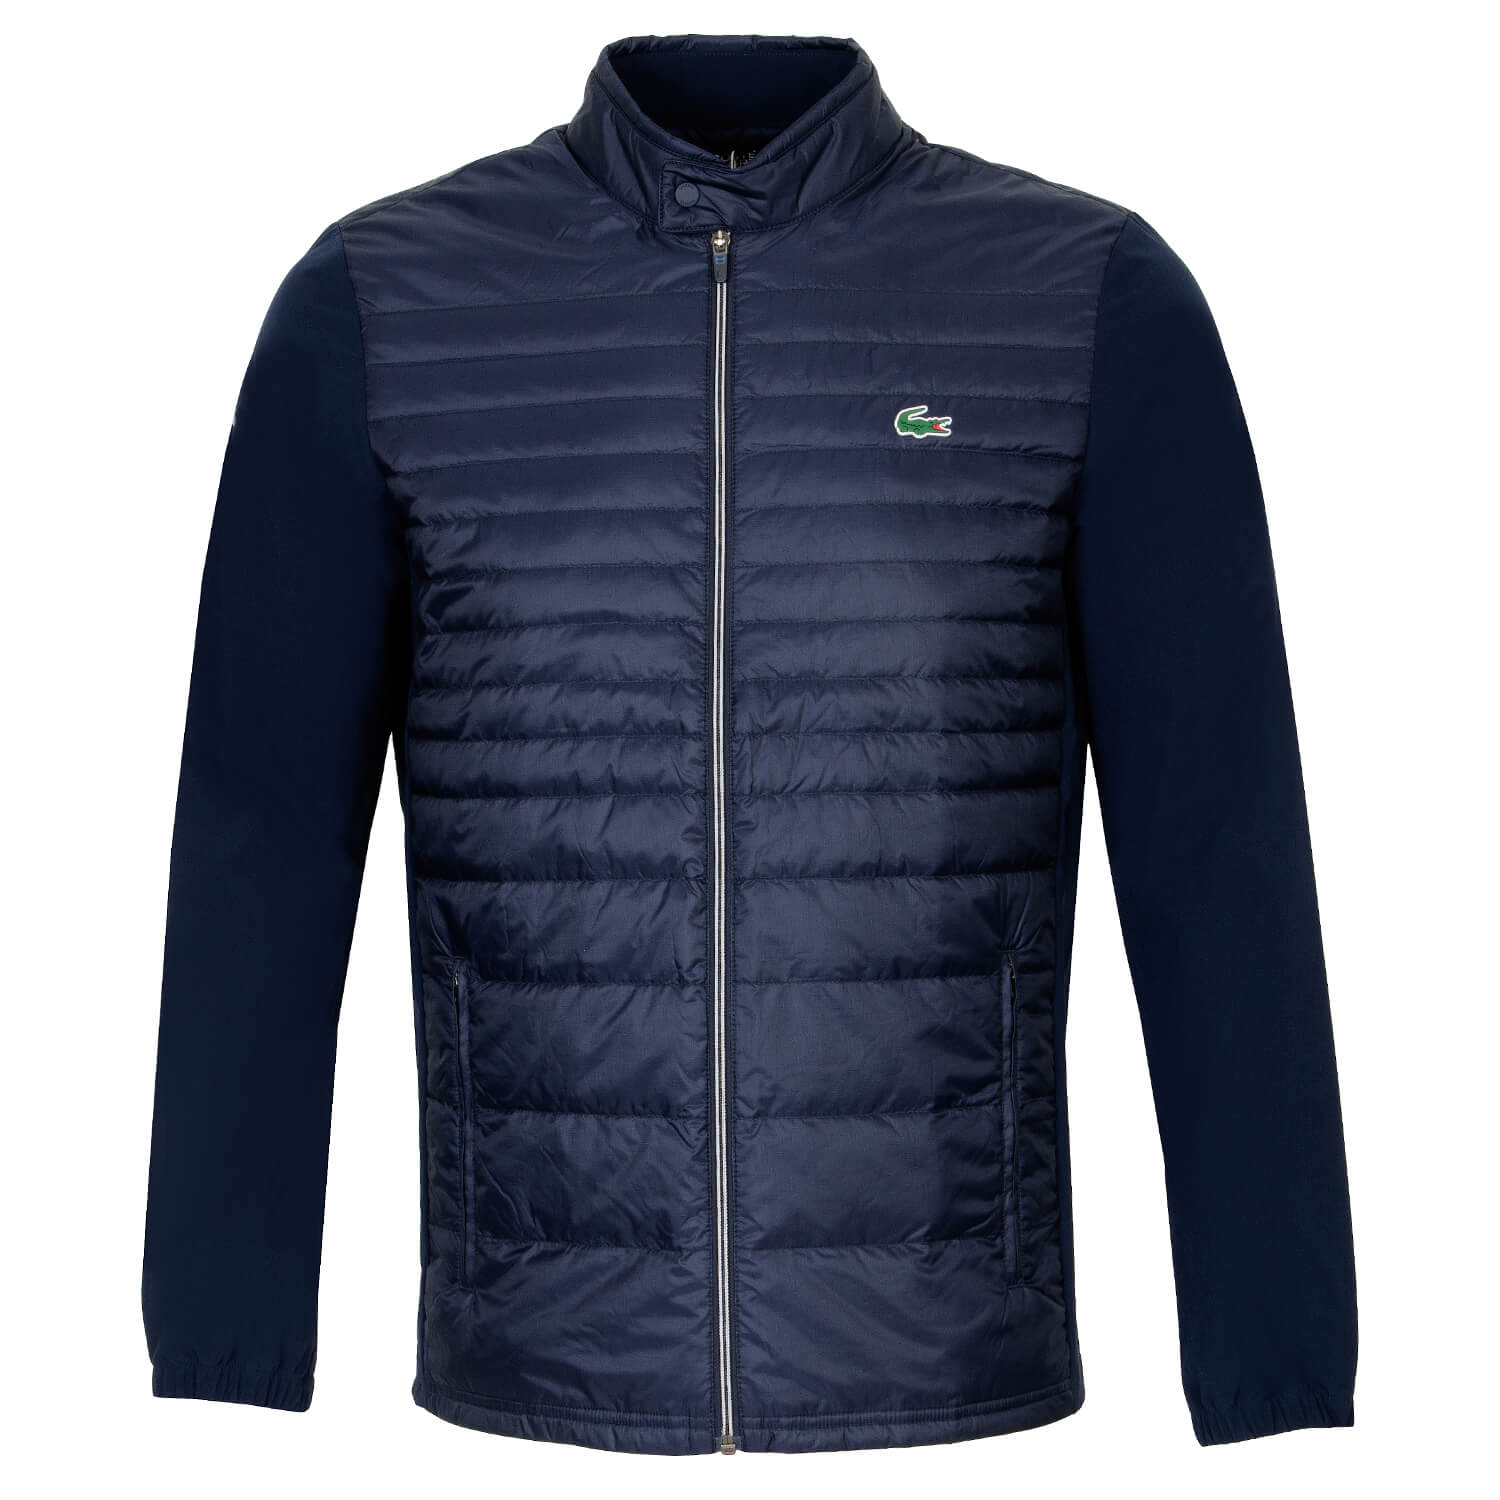 Image of Lacoste Ripstop Hybrid Jacket